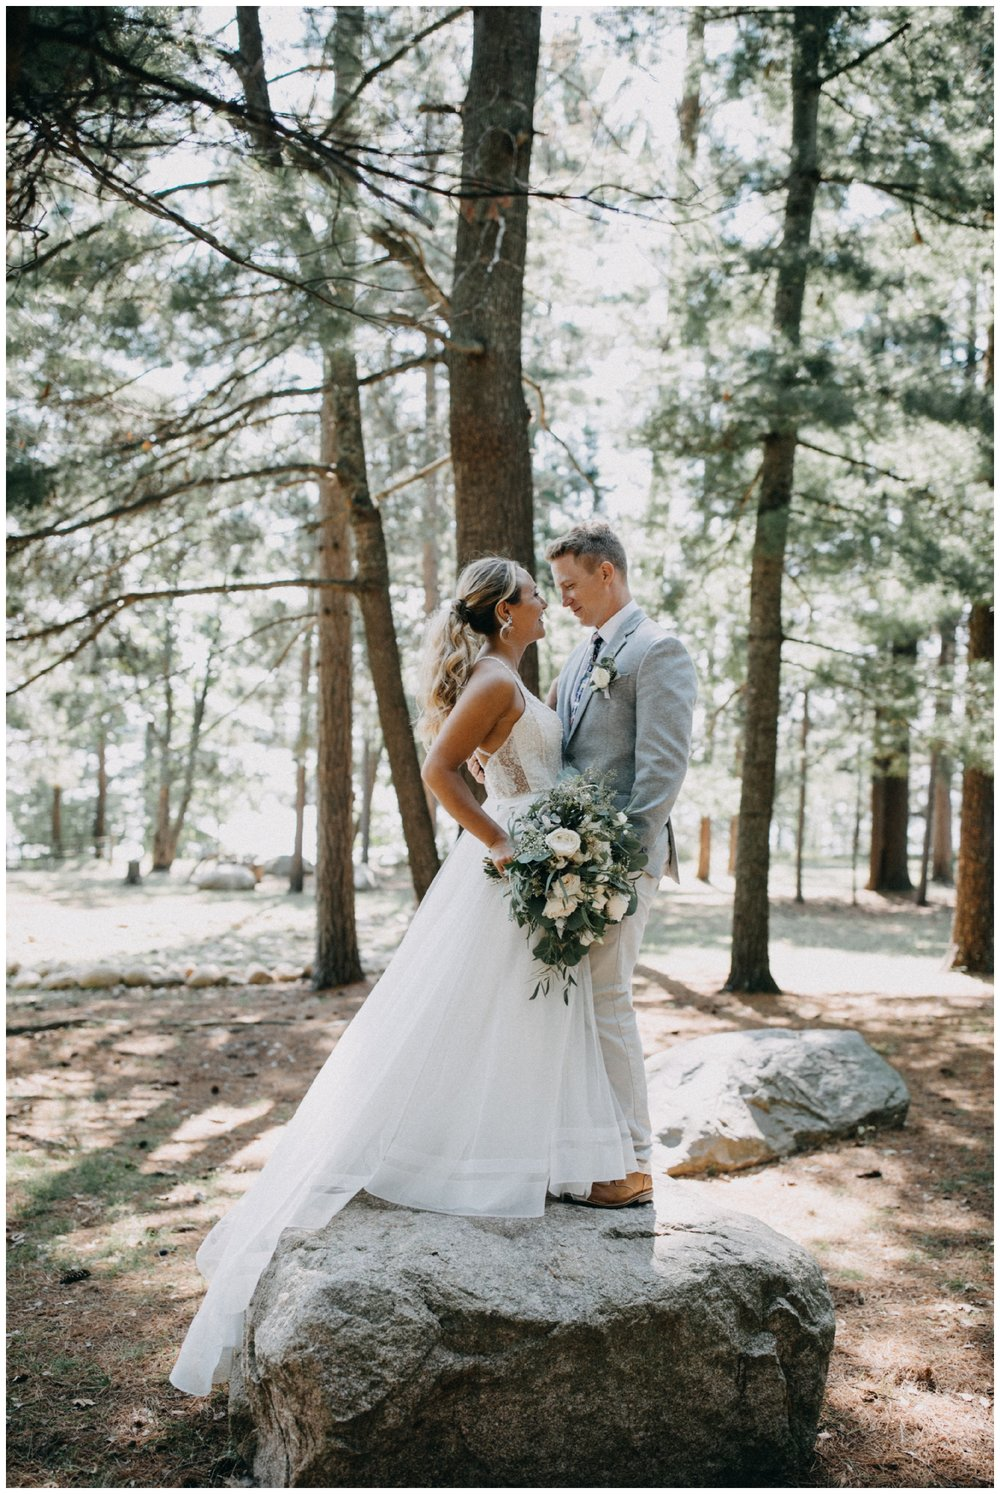 Whimsical forest wedding in the north woods of Pine River Minnesota